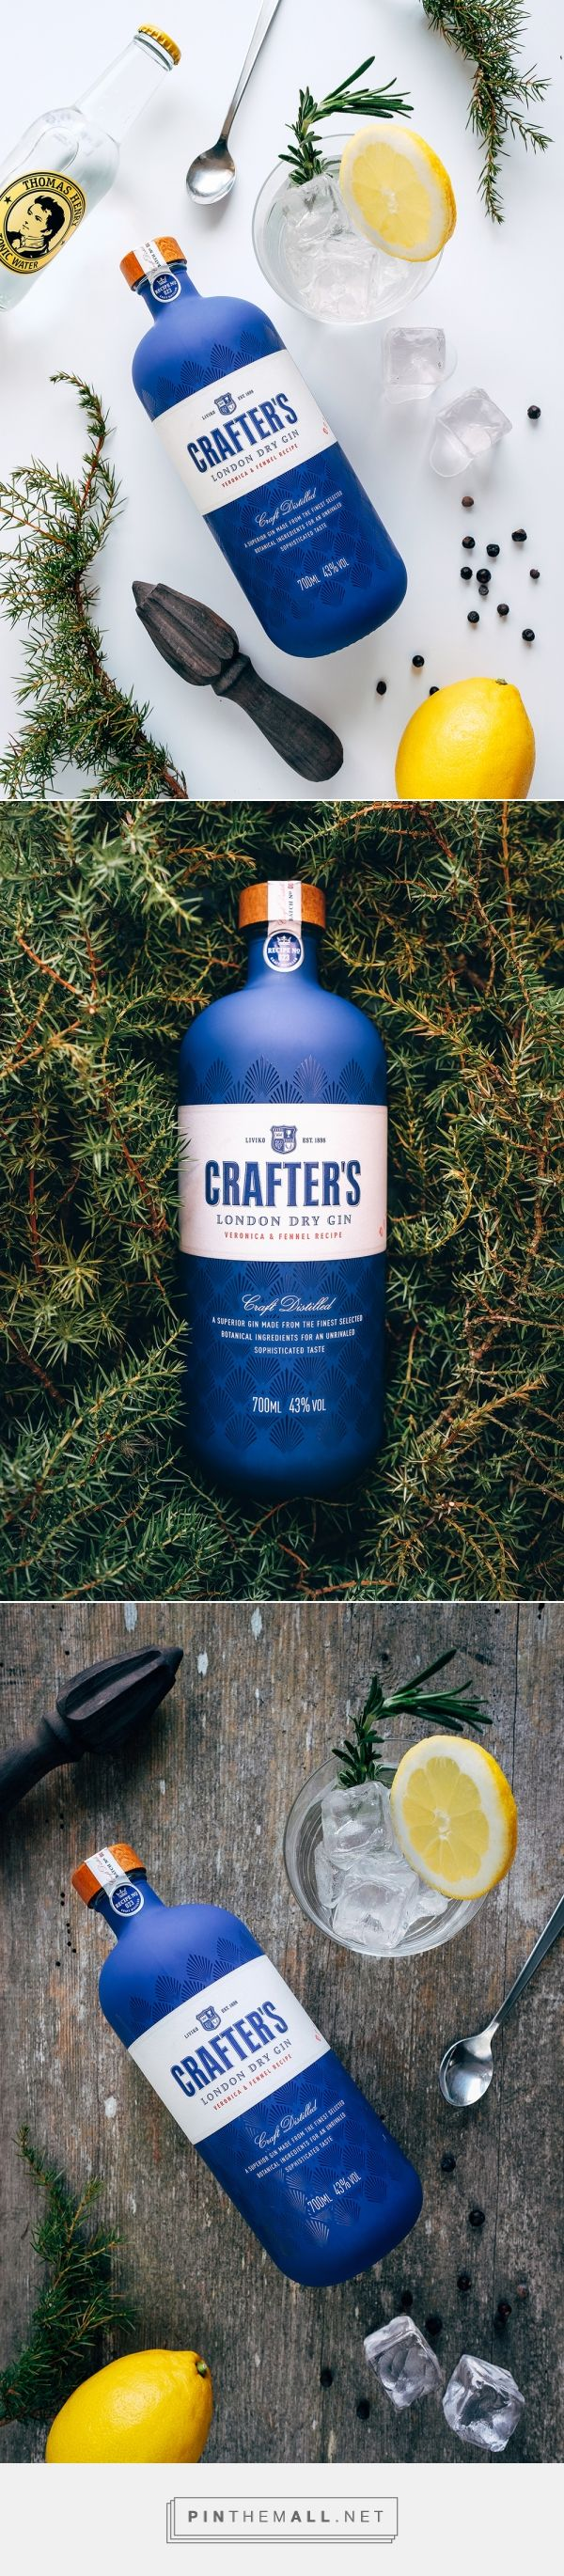 Crafters Gin design by KOOR Packaging Design - that lid seal tho